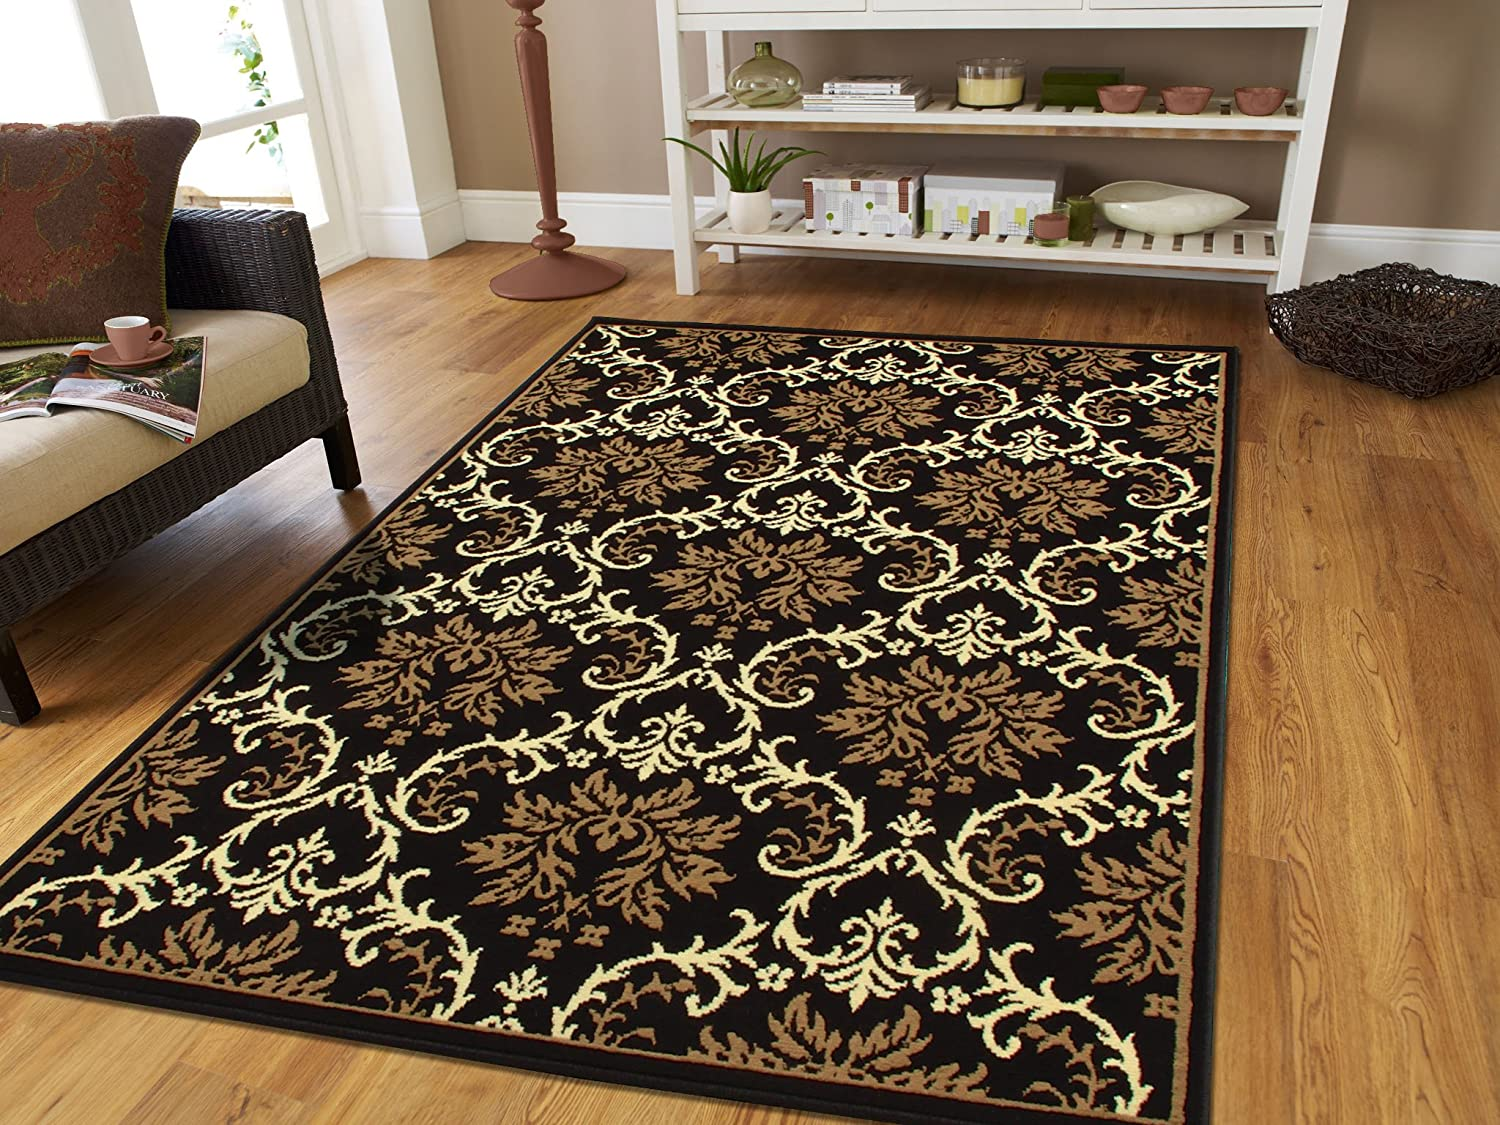 Amazon Large 8x11 Modern Rug Luxury Black Contemporary Rugs 8x10 Beige Cream For Living Room Kitchen Dining